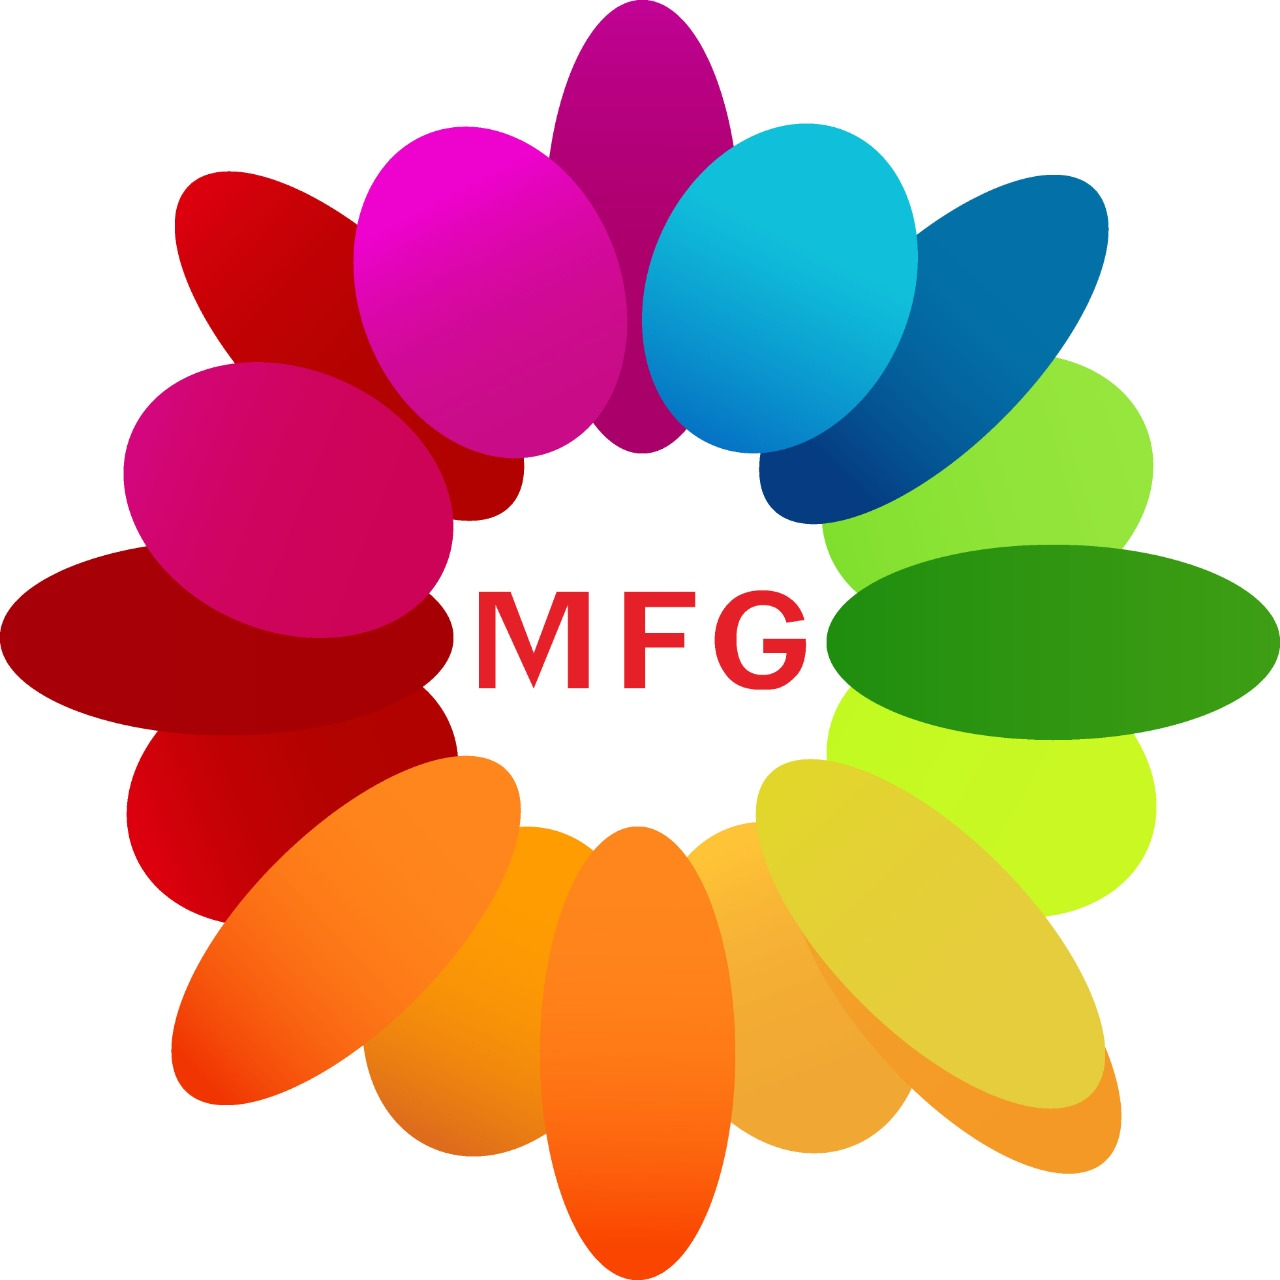 1 Kg Rich Dry Fruits Plum Cake With Box Of Cookies And Candles